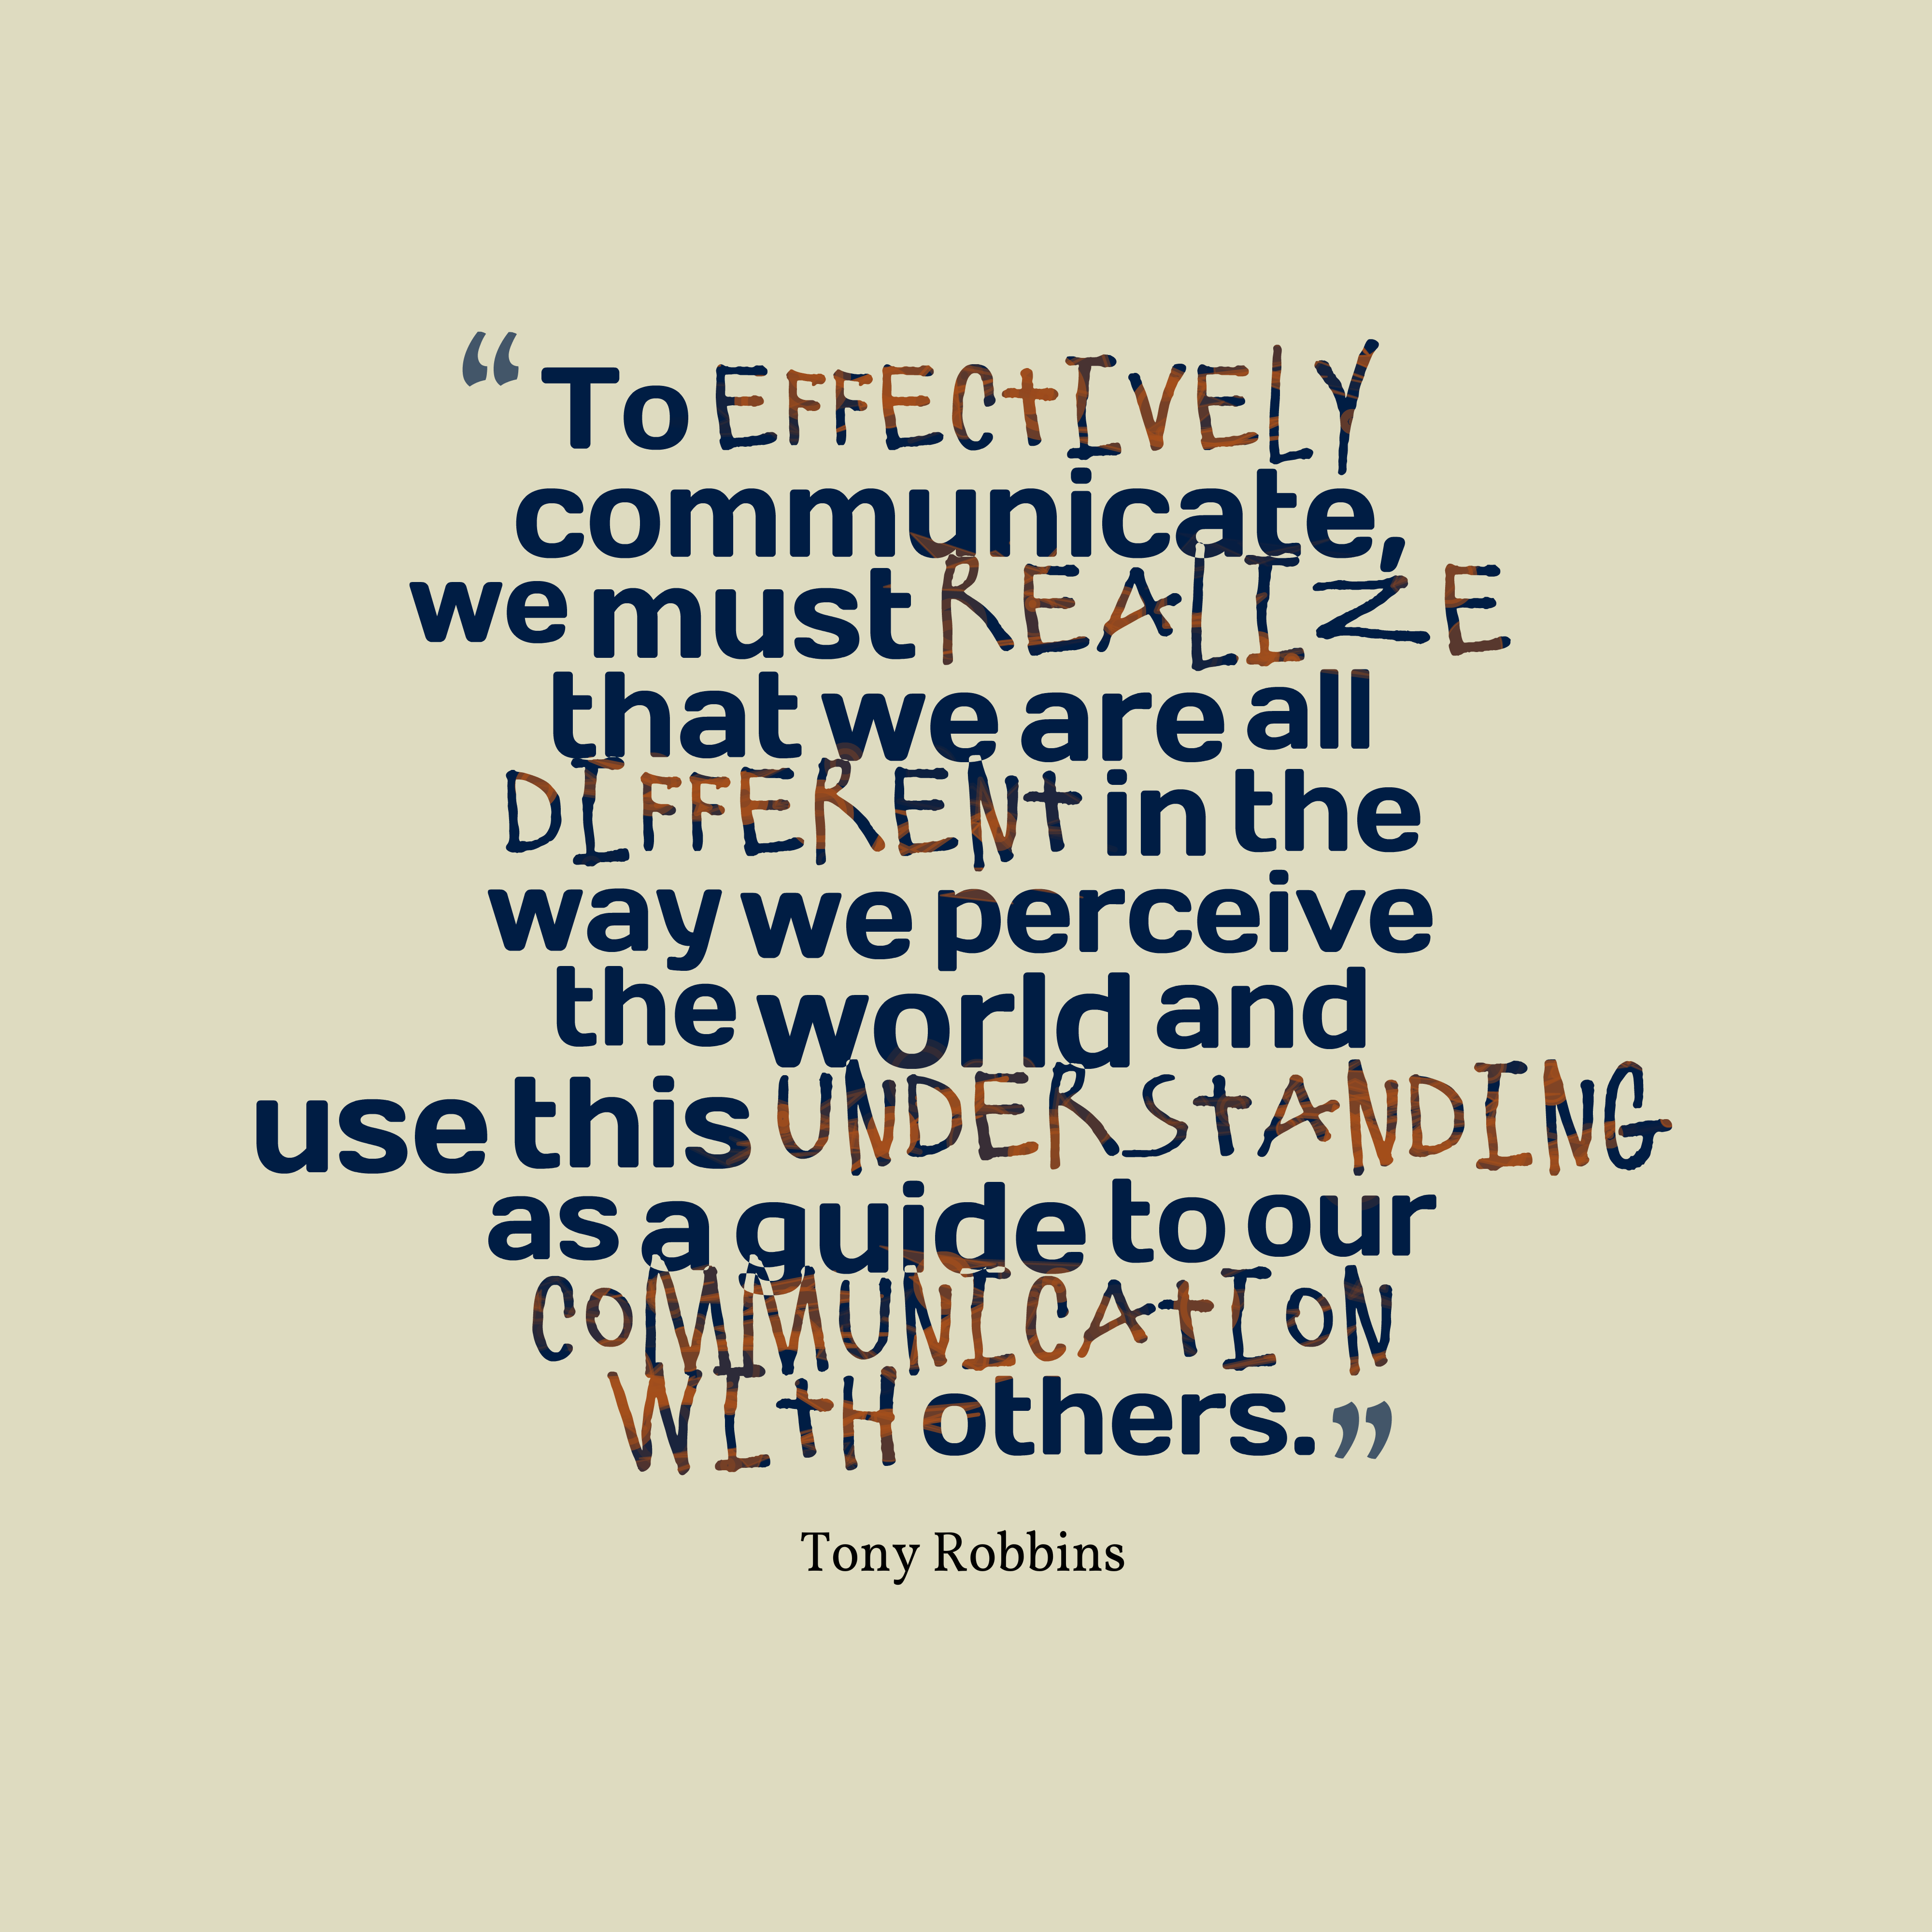 Https quotescover com tony robbins quote about communication app high resolution image